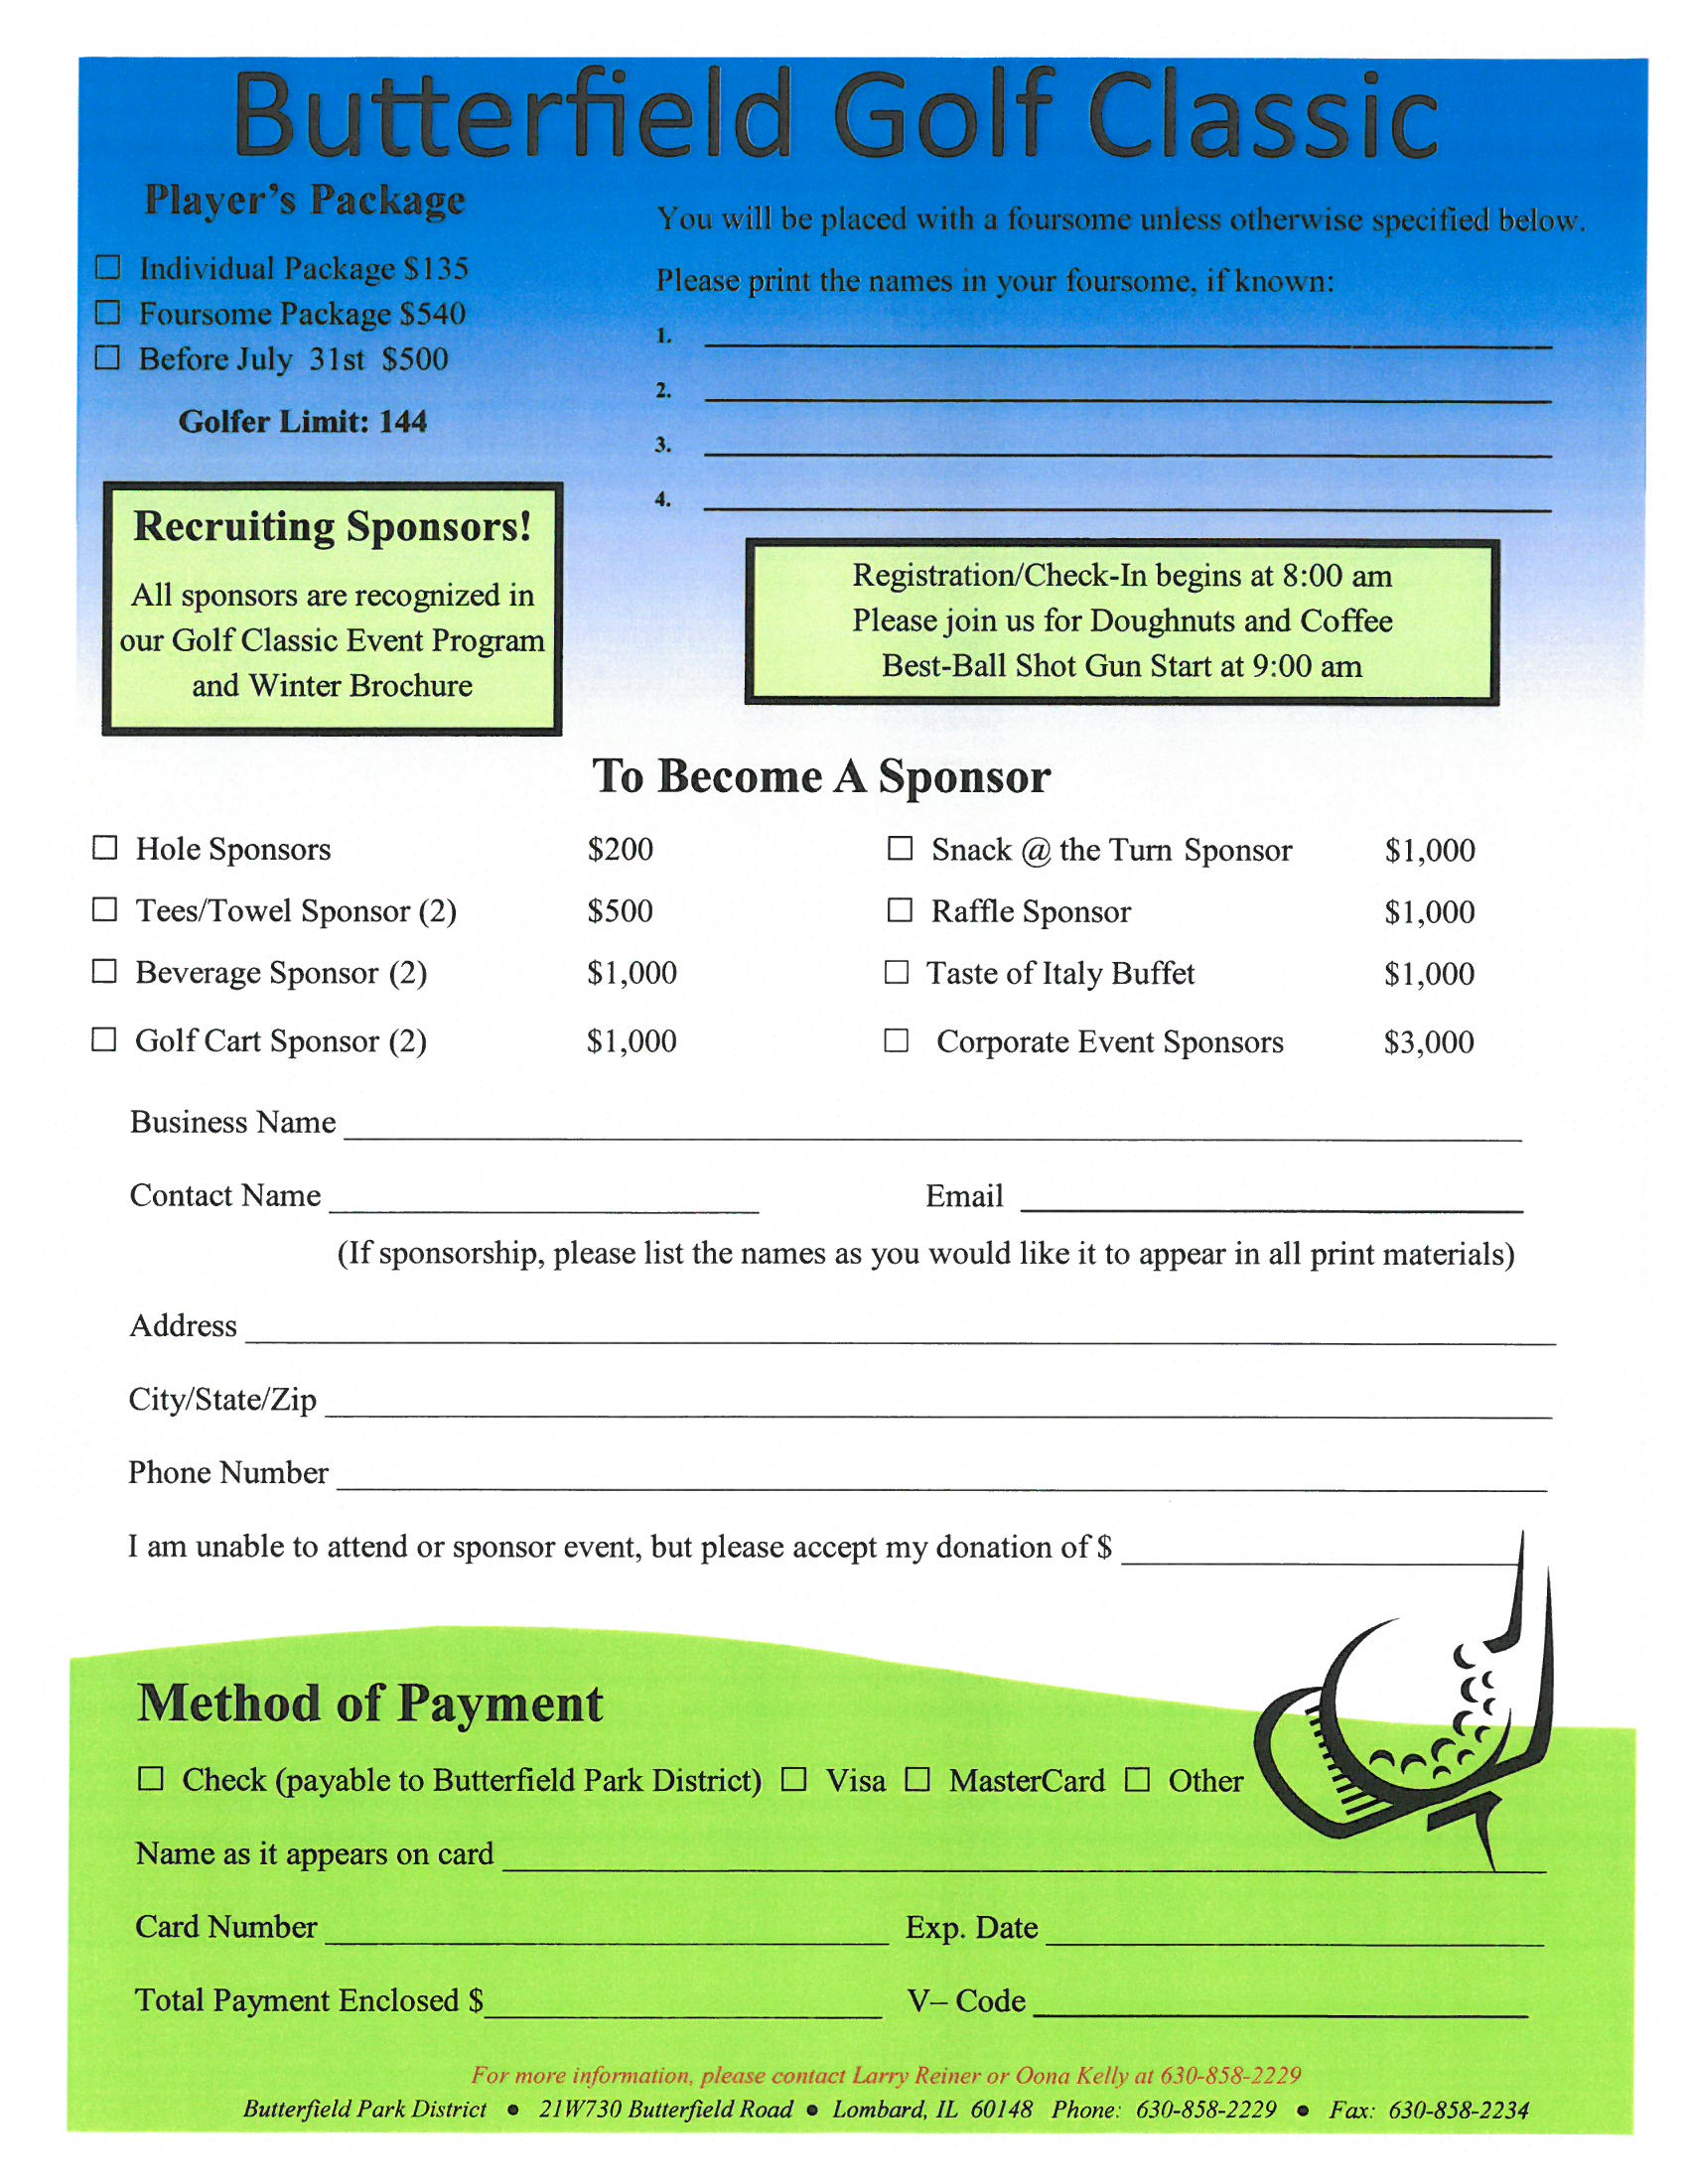 Butterfield Golf Classic Invitation 2017 Page 3